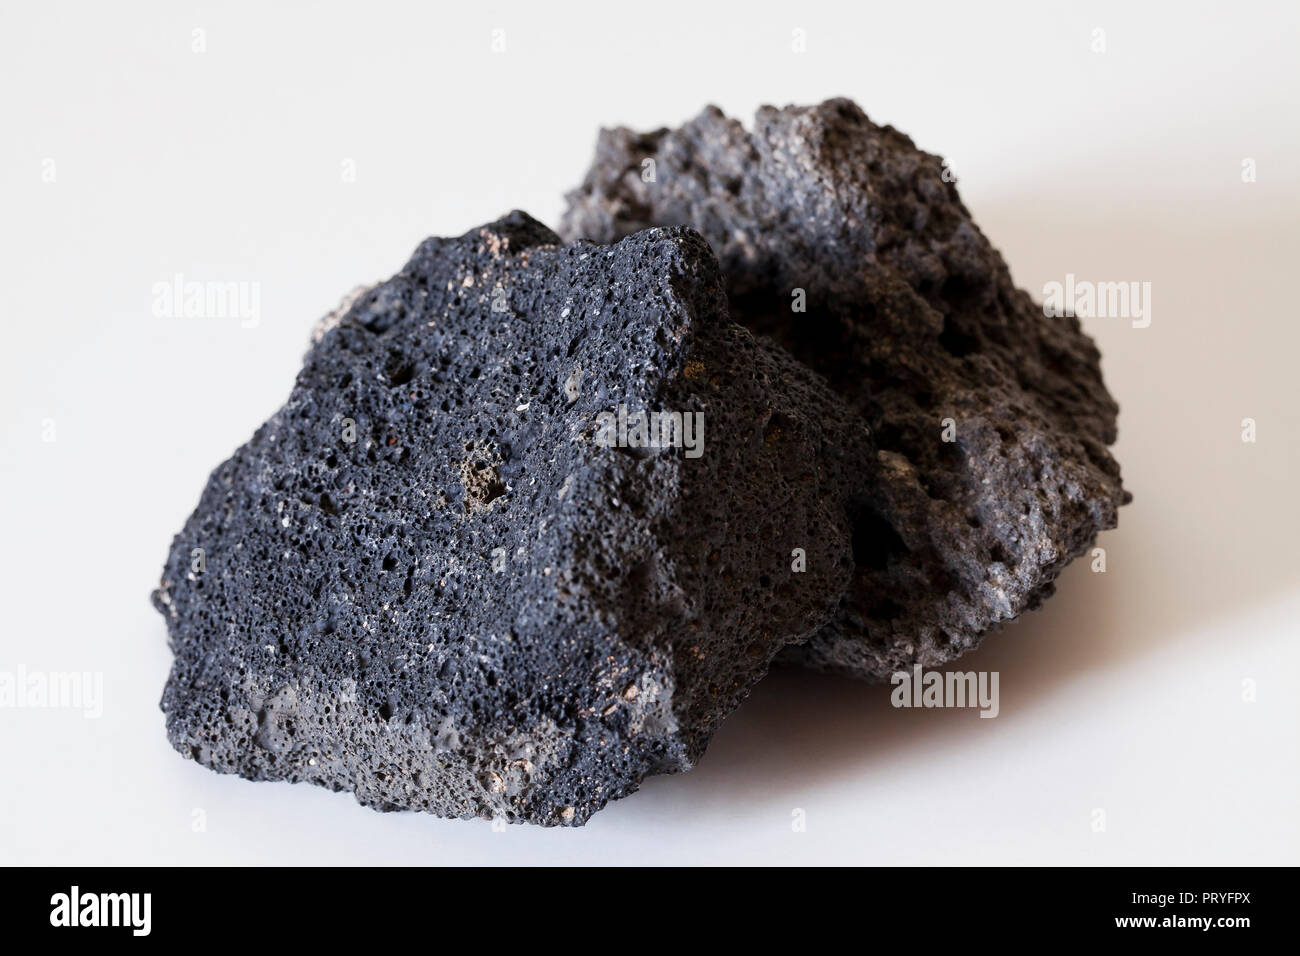 Igneous Rocks Stock Photos Amp Igneous Rocks Stock Images